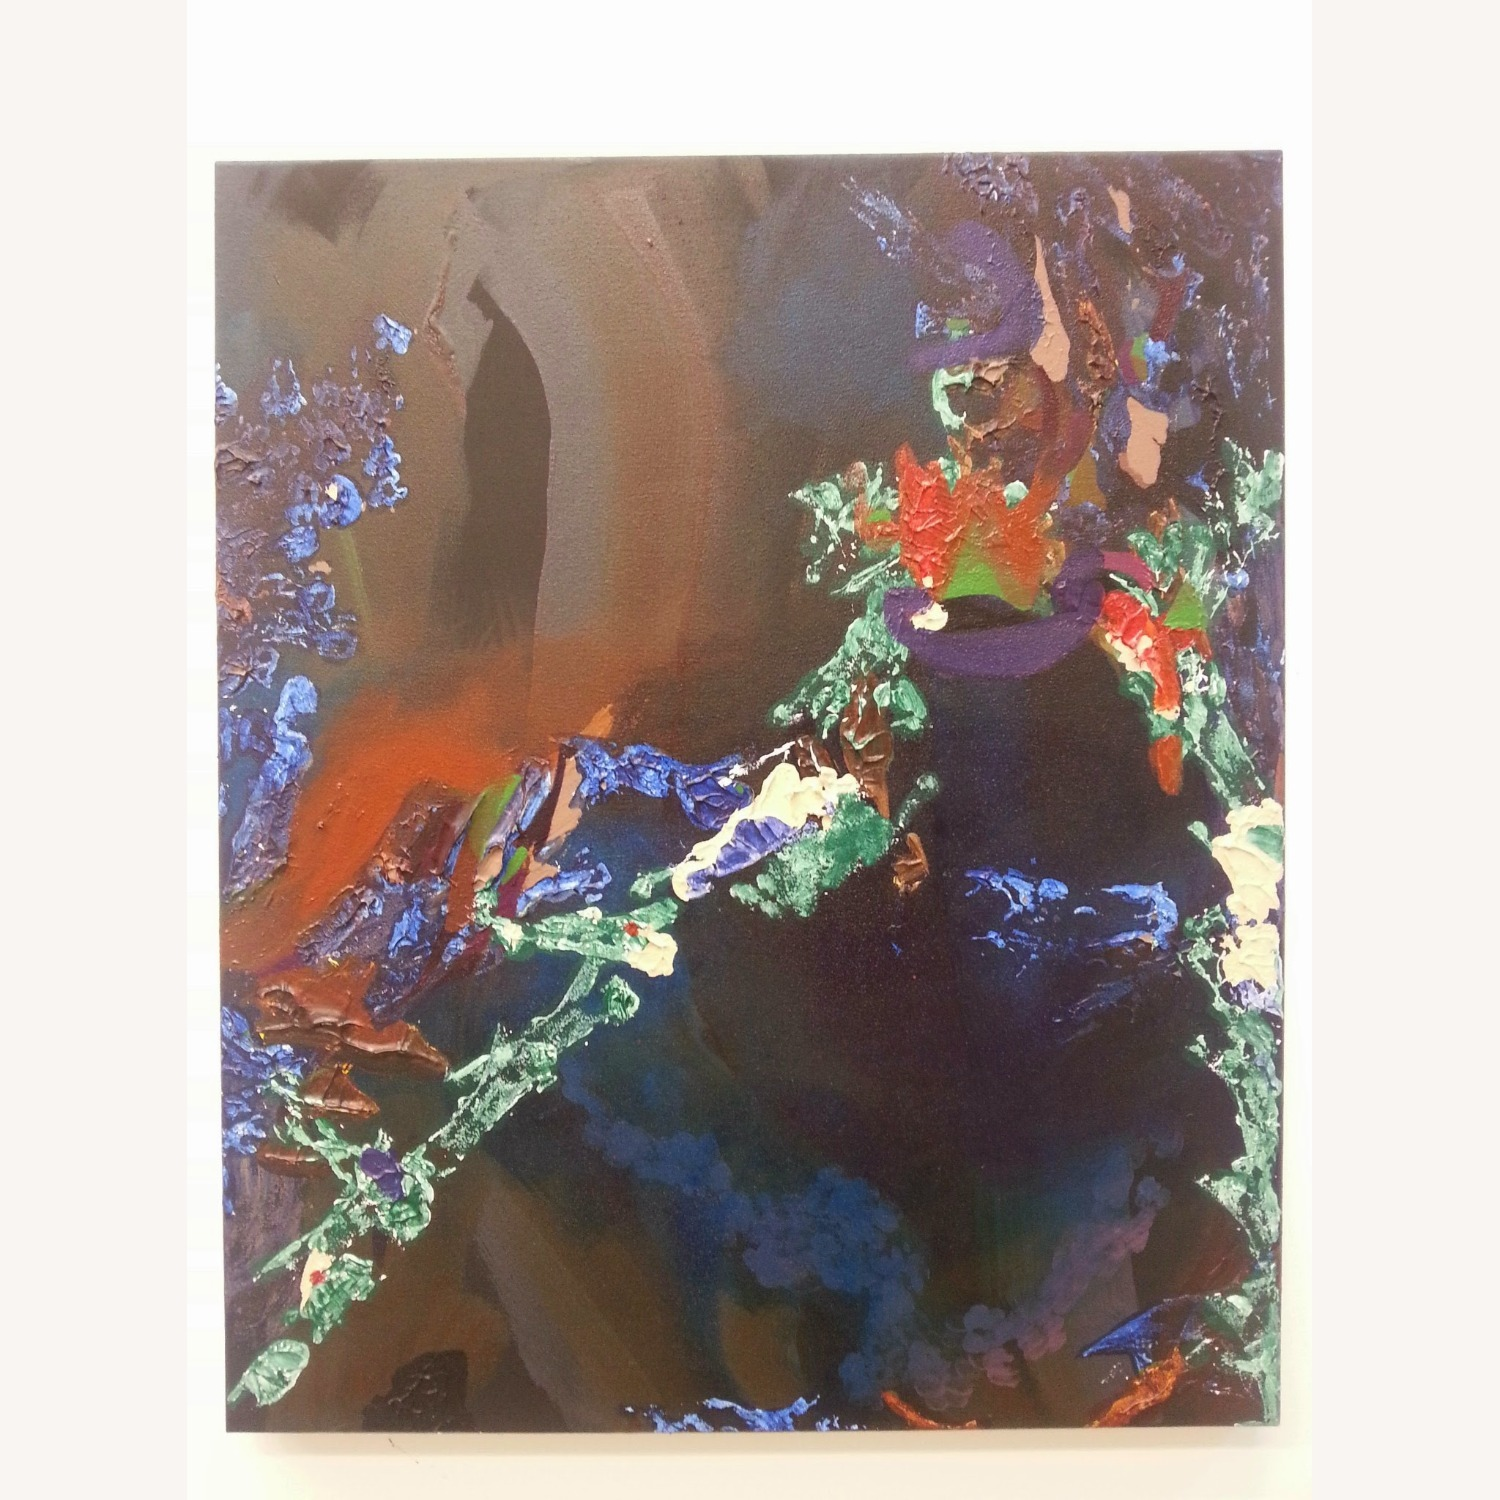 Abstract Canvas Painting - image-5